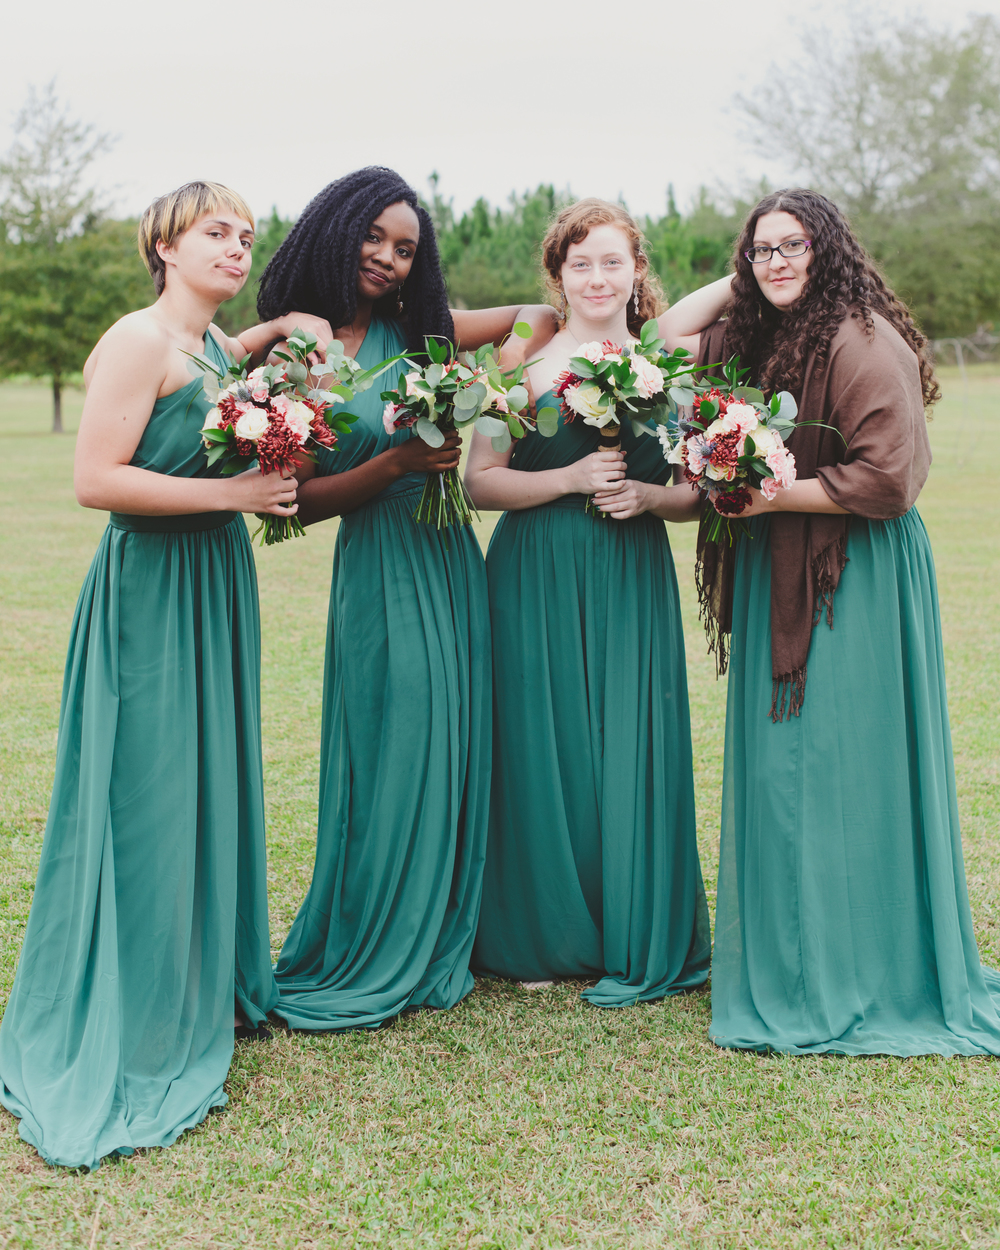 Ng-Photography-backyard-wedding-royal-hair-and-makeup-ivory-and-beau-wedding-planning-wedding-flowers-savannah-florist-savannah-flowers-savannah-weddings-savannah-wedding-savannah-event-planner-savannah-wedding-planner-savannah-rustic-wedding-6.jpg